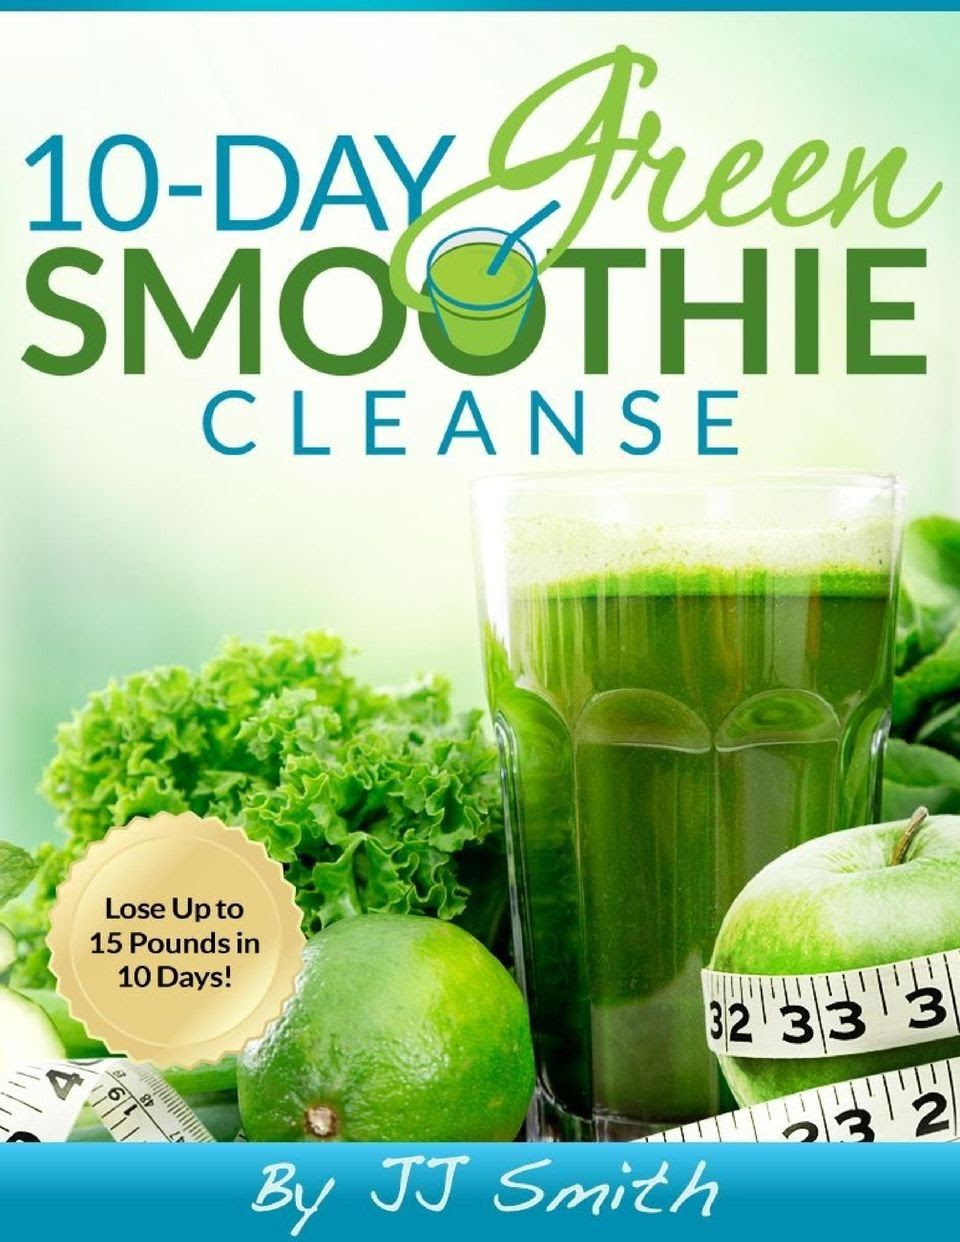 10 Day Green Smoothie Cleanse By Jj Smith Pdf Free Download Smoothie Cleanse 10 Day Green Smoothie Green Smoothie Cleanse